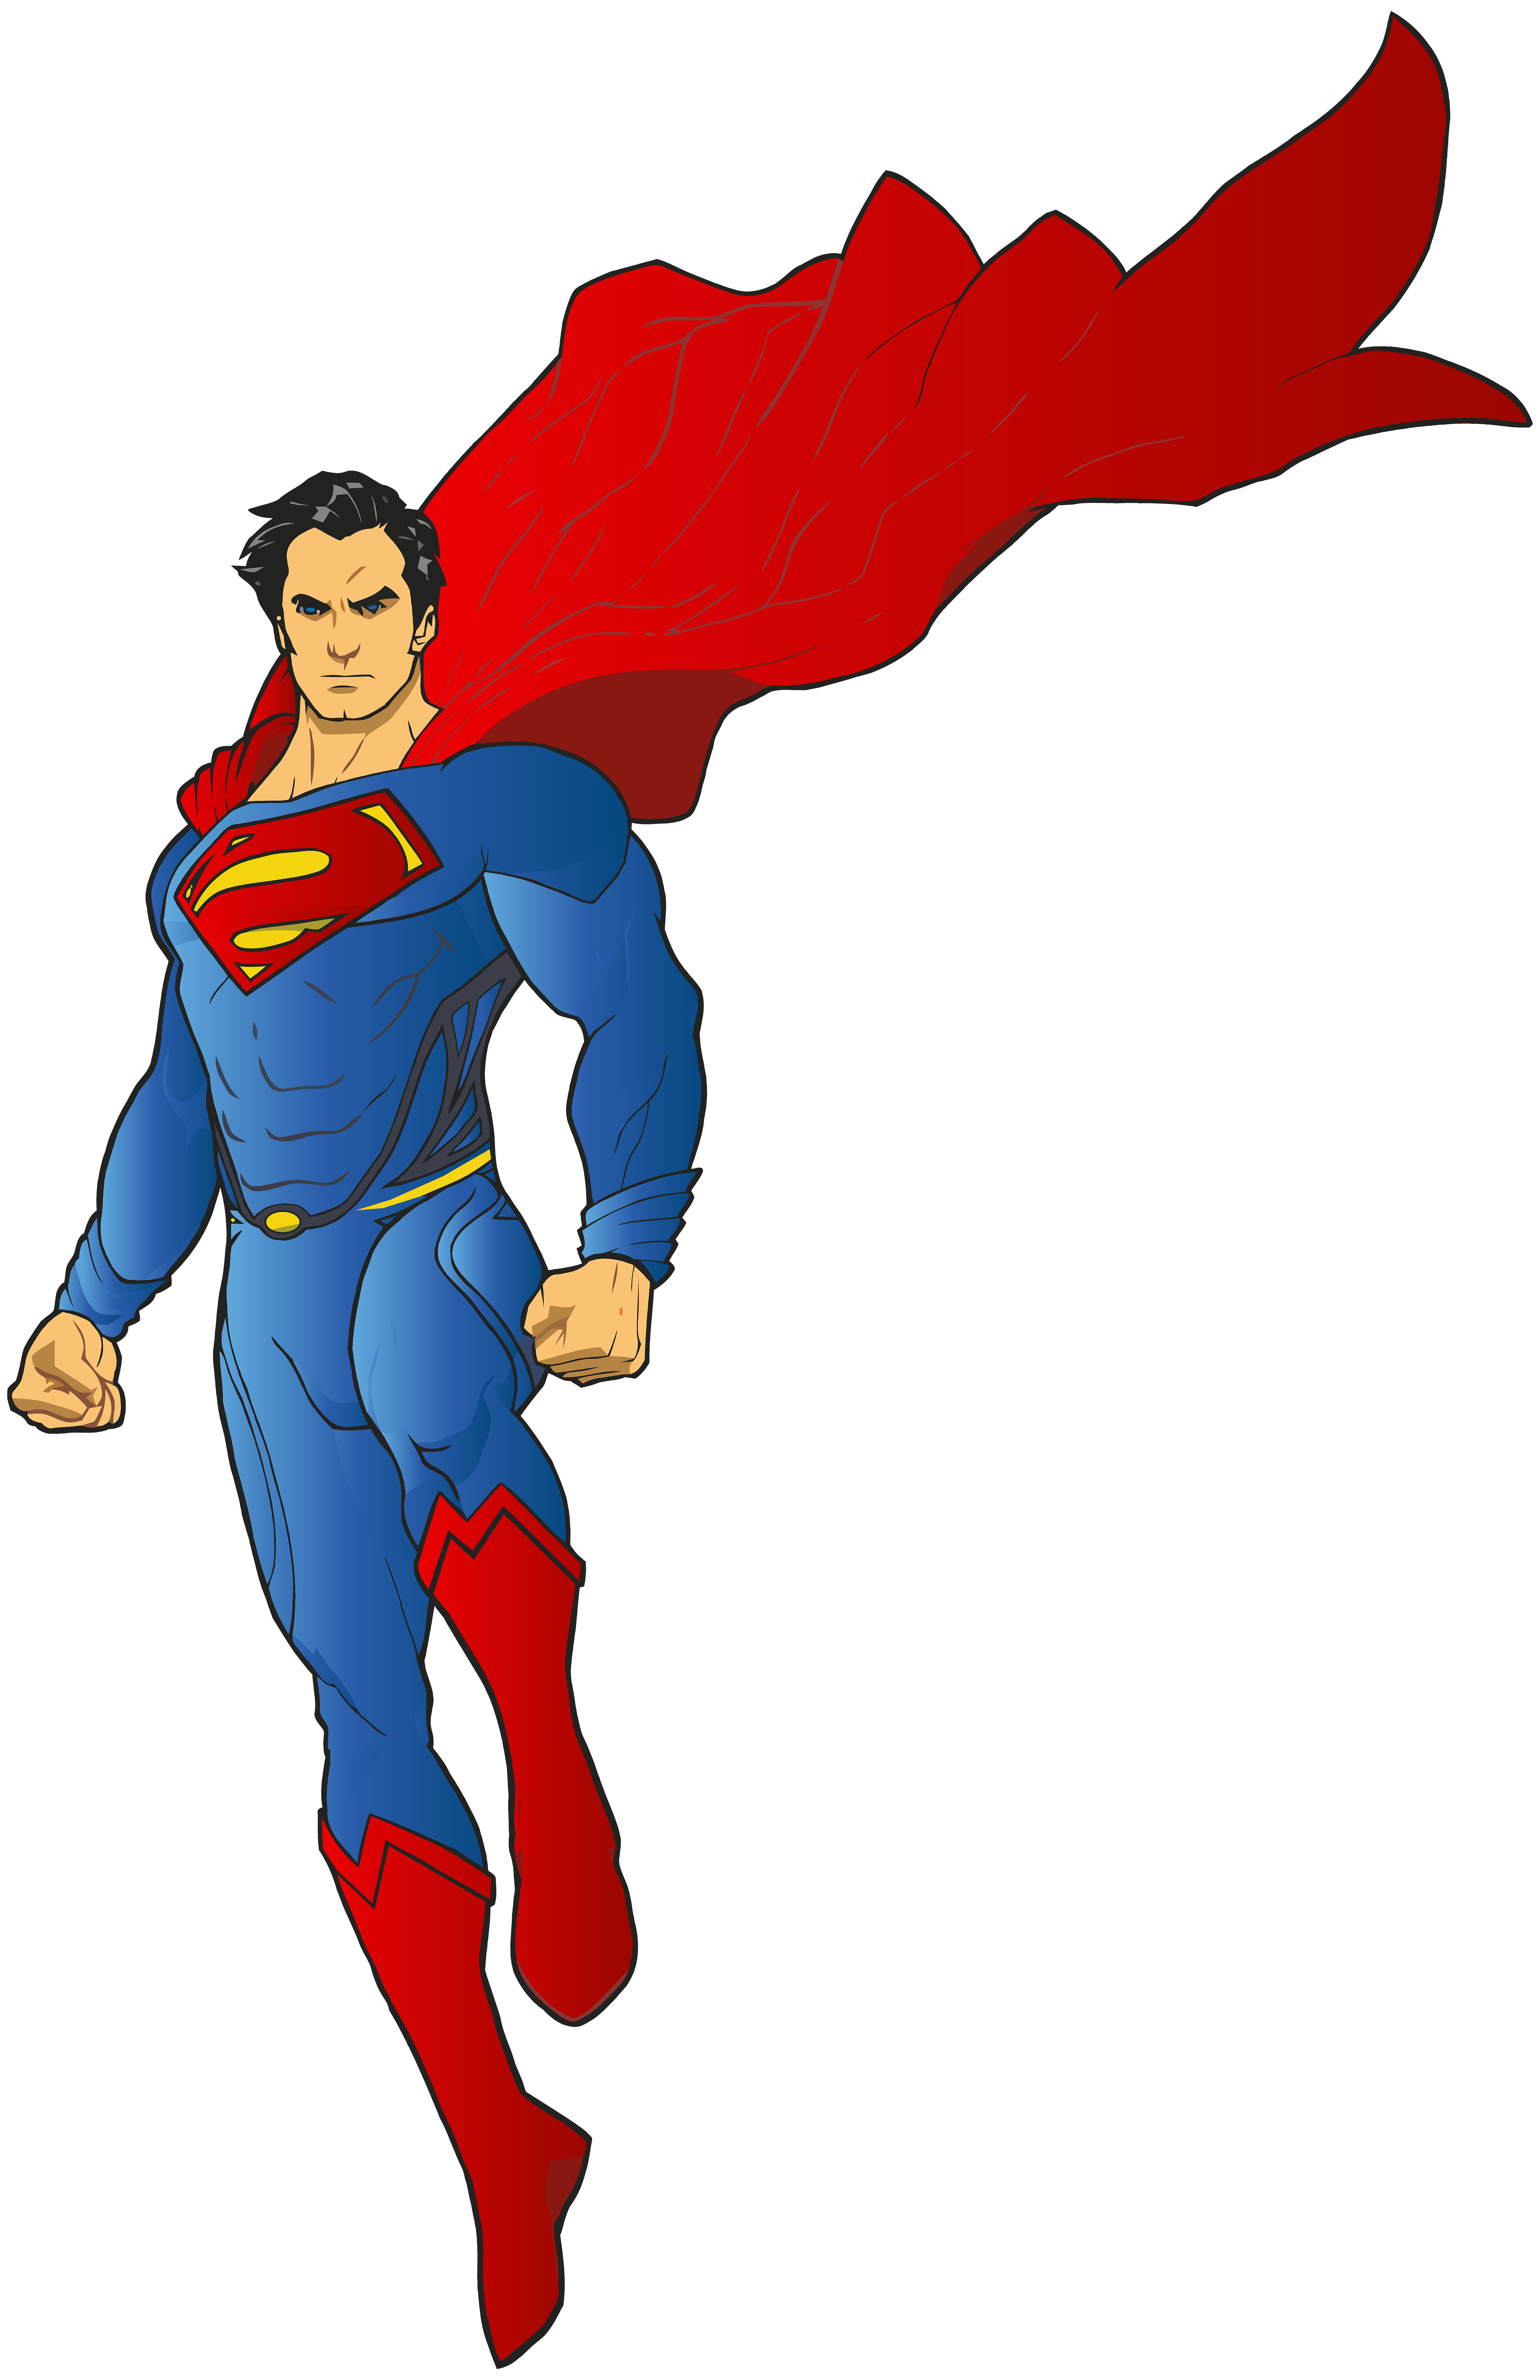 Super clipart banner freeuse library Super Hero Transparent Clip Art Image | Gallery Yopriceville - High ... banner freeuse library